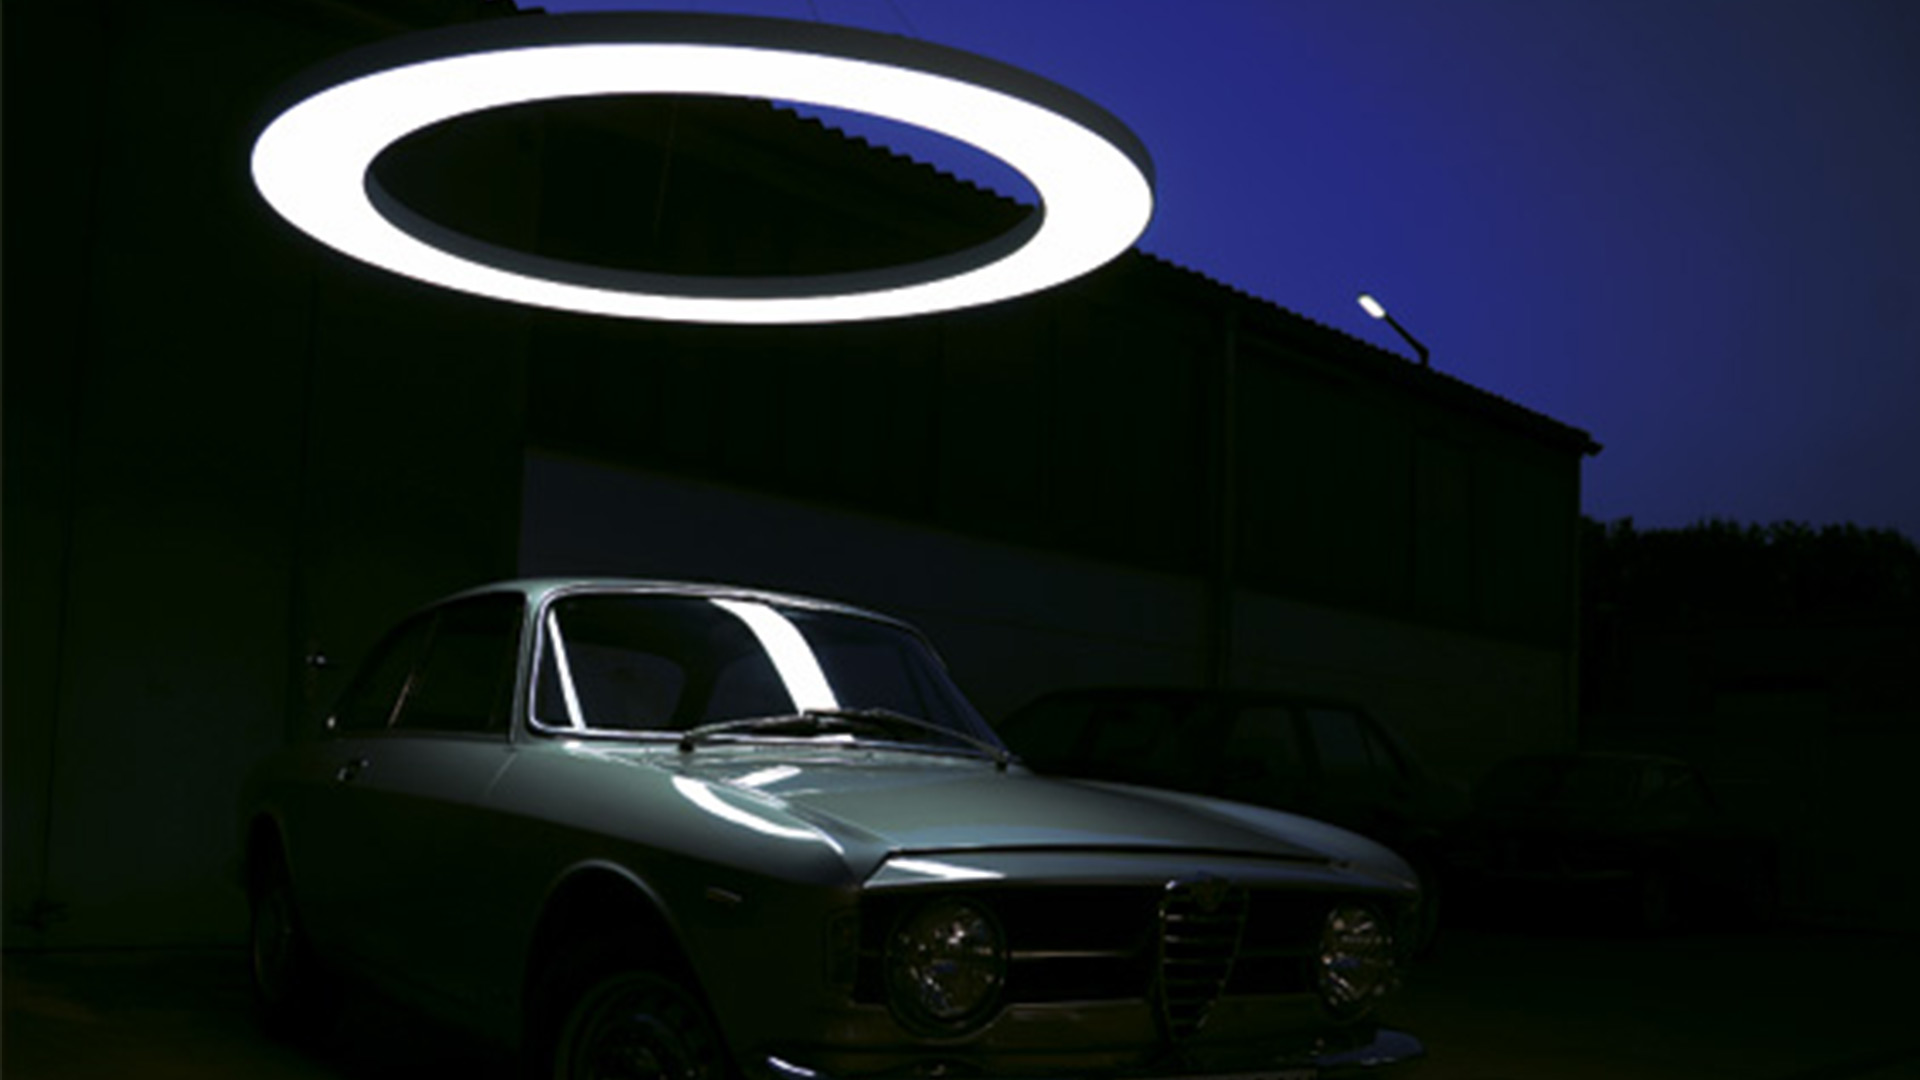 Sattler Anello Circular Lighting Feature Darkness Car Blog Nulty